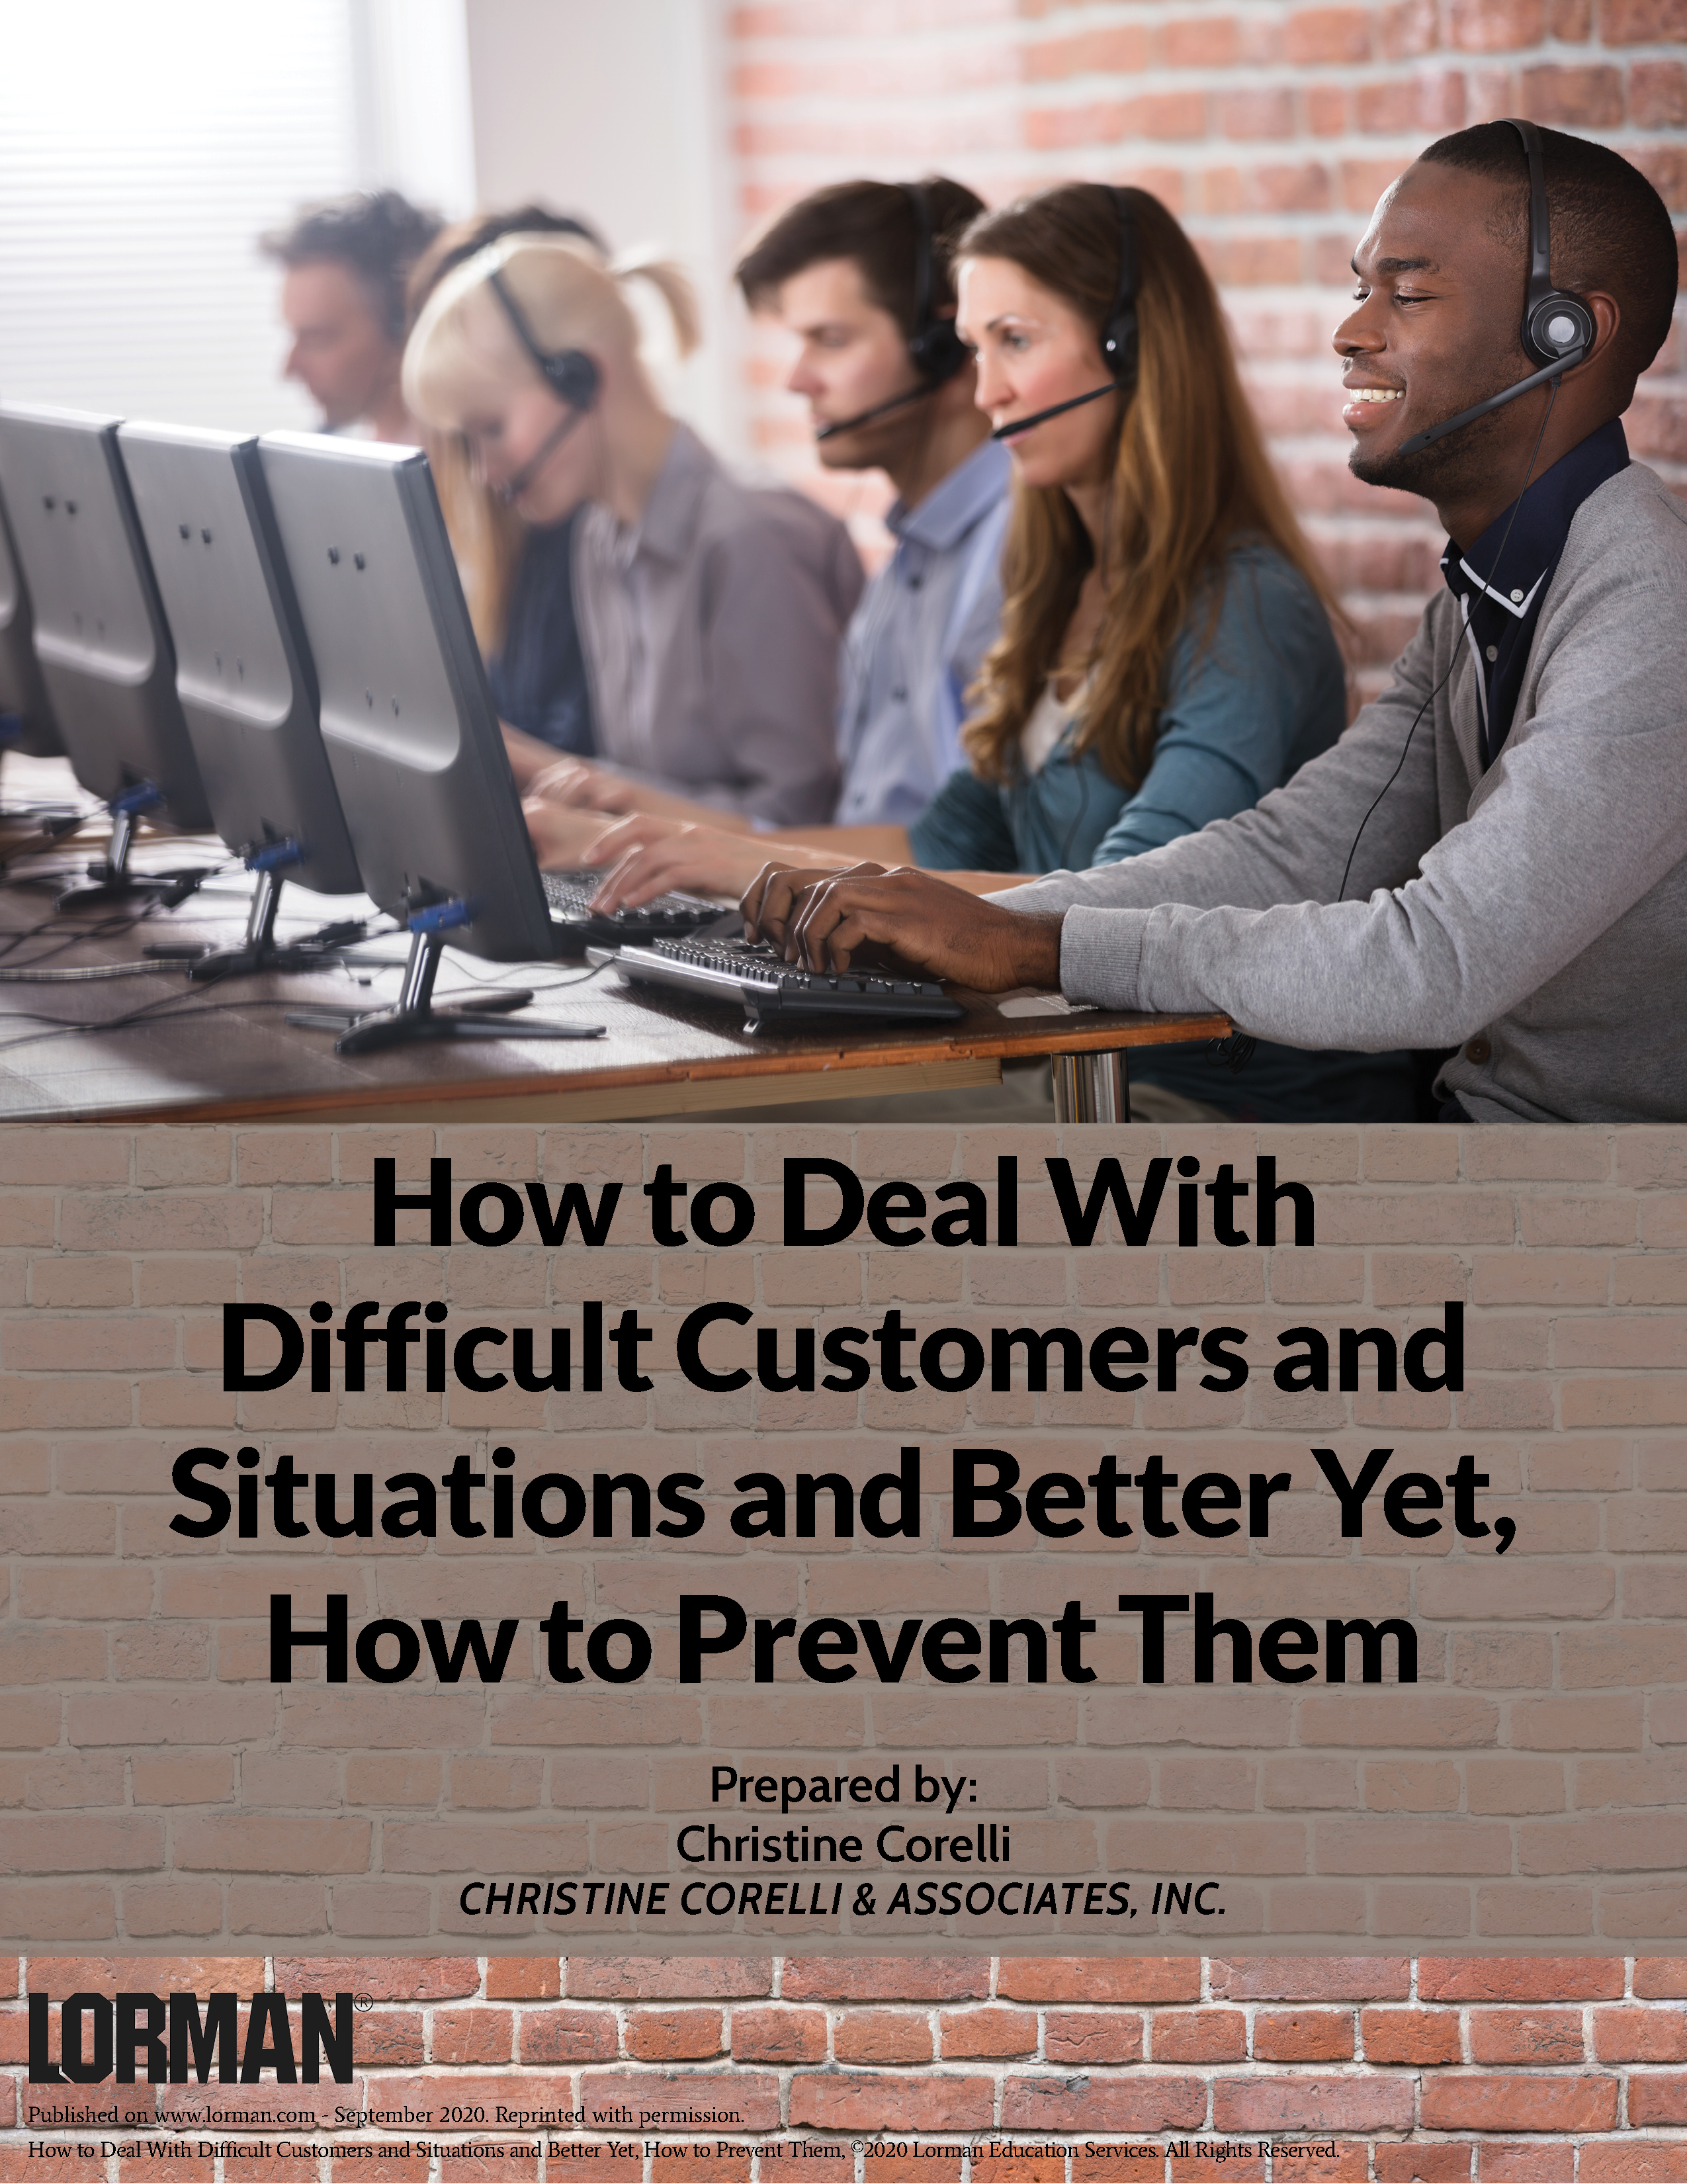 How to Deal With Difficult Customers and Situations and Better Yet, How to Prevent Them